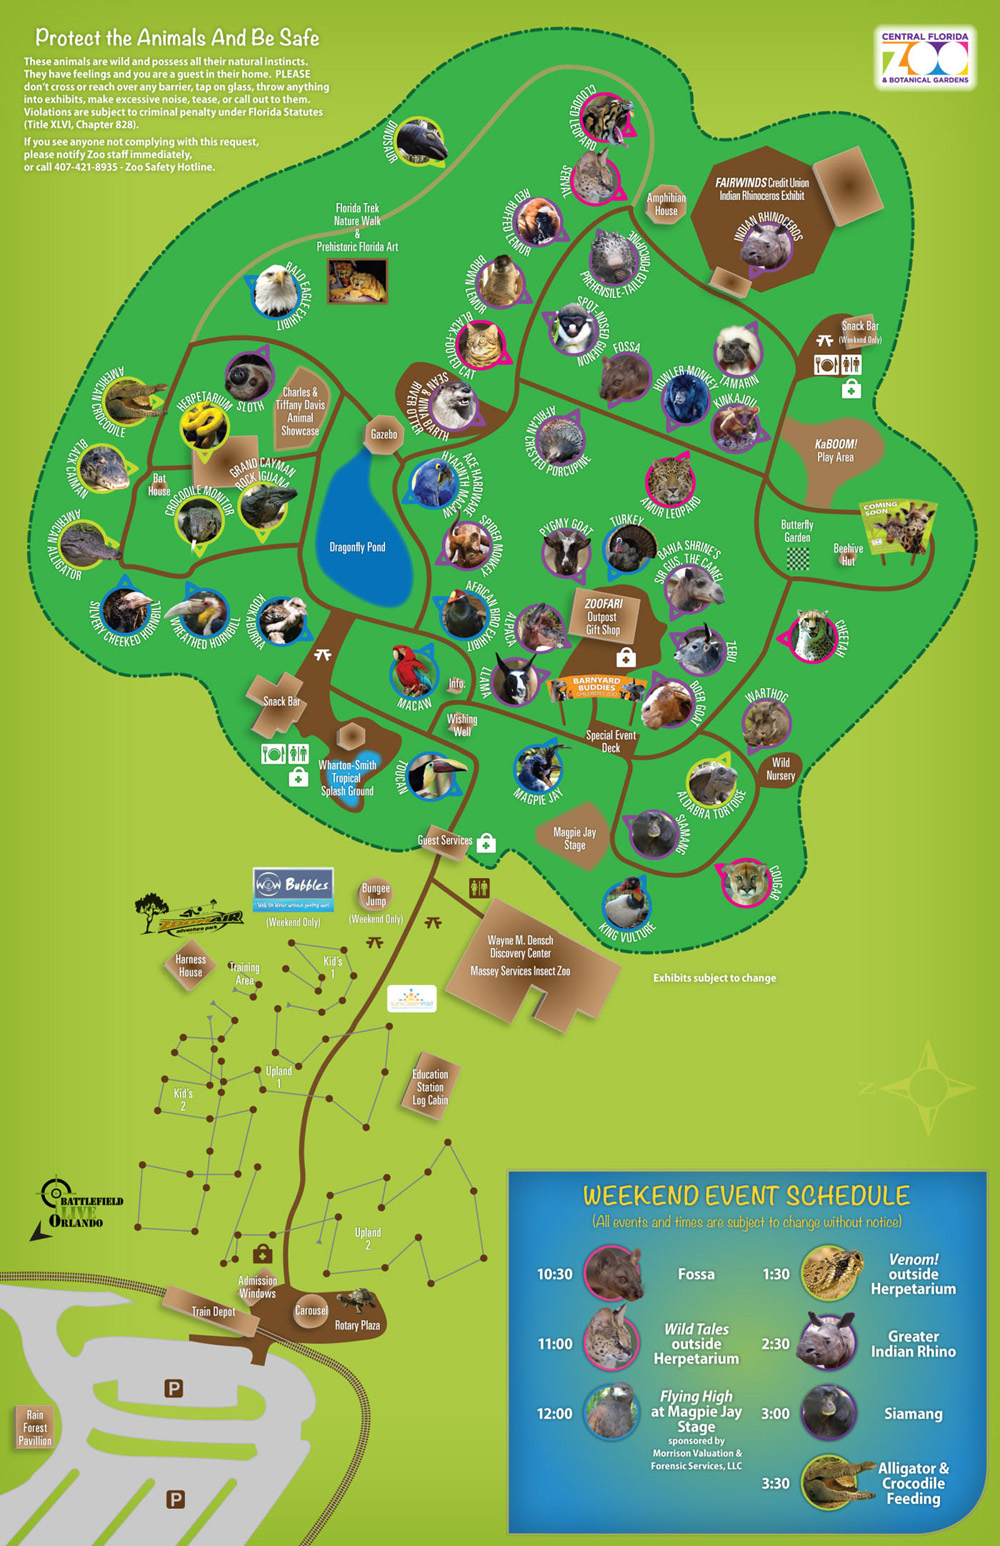 Les Zoos Dans Le Monde - Central Florida Zoo And Botanical Gardens - Zoos In Florida Map